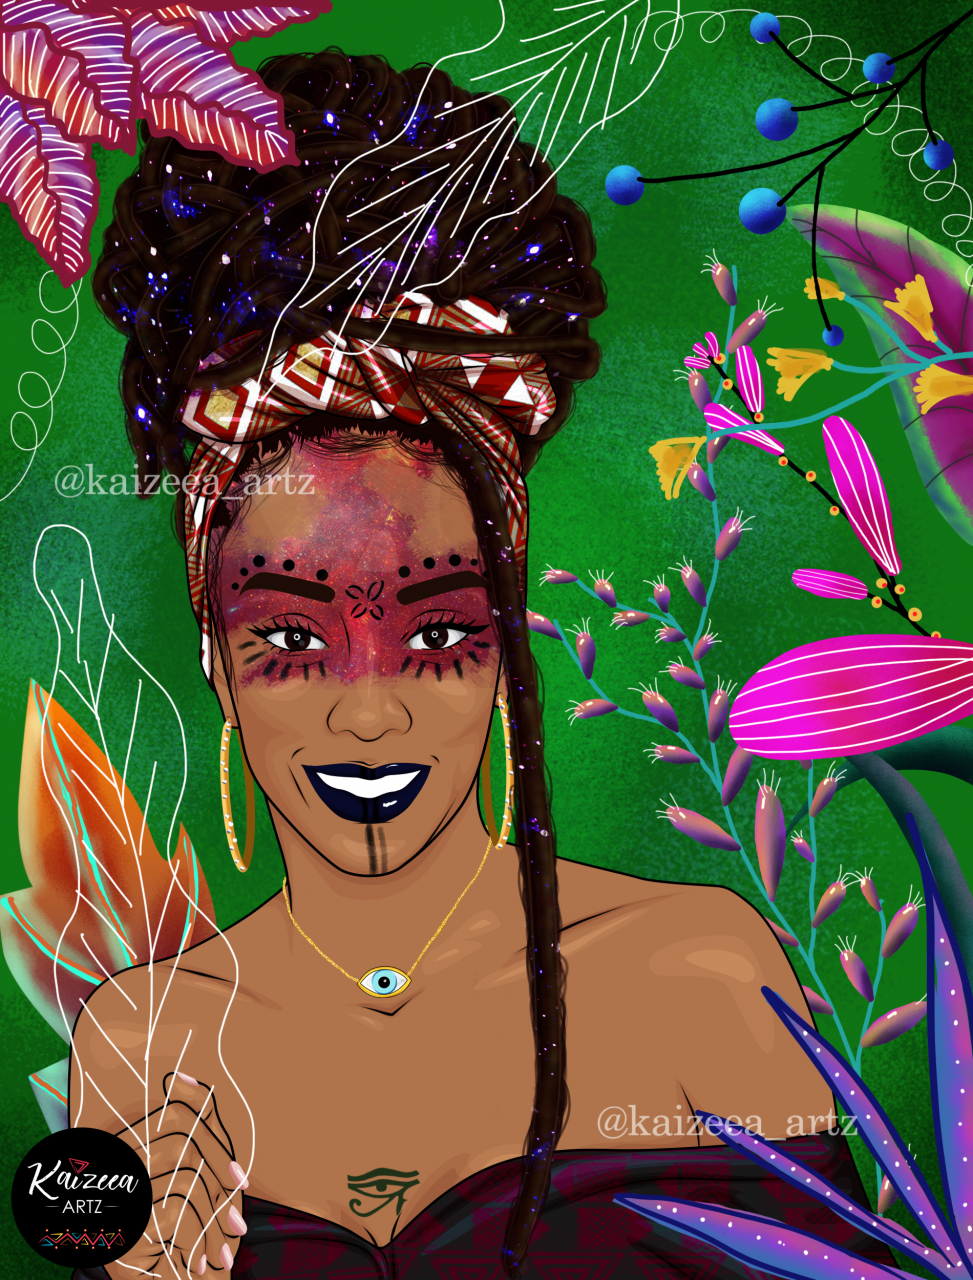 Kaizeea kaizeea artz morisien mauritian artist artiste mauricienne digital art lart digitale digital painting afro art mauritius island visual art plaine magnien south kaizeeartz.org black artist artiste africaine black entrepreneur instagram art facebook art lar african art lar africain lart noir melanie kaizeea artz illustration bikini cartoon art waist beads ileke idi colier de hanches yoruba blackfemale culture wombman top black art top african art dope black art pinterest curvy chubby art swimwear jewelry rose flower pink sparks sparkles lace stretch marks art scratch Amazon amazone hippie tribe boho bohemian art locs dread locs rasta headwrap turban wax print mawe tet dessin universe tribe makeup stars eye third eye 3rd eye chakra nature birthmarks plant jungle forest plante medicinal herb baie swirl leaf feuille illustration vert bijoux oeil ina dessin